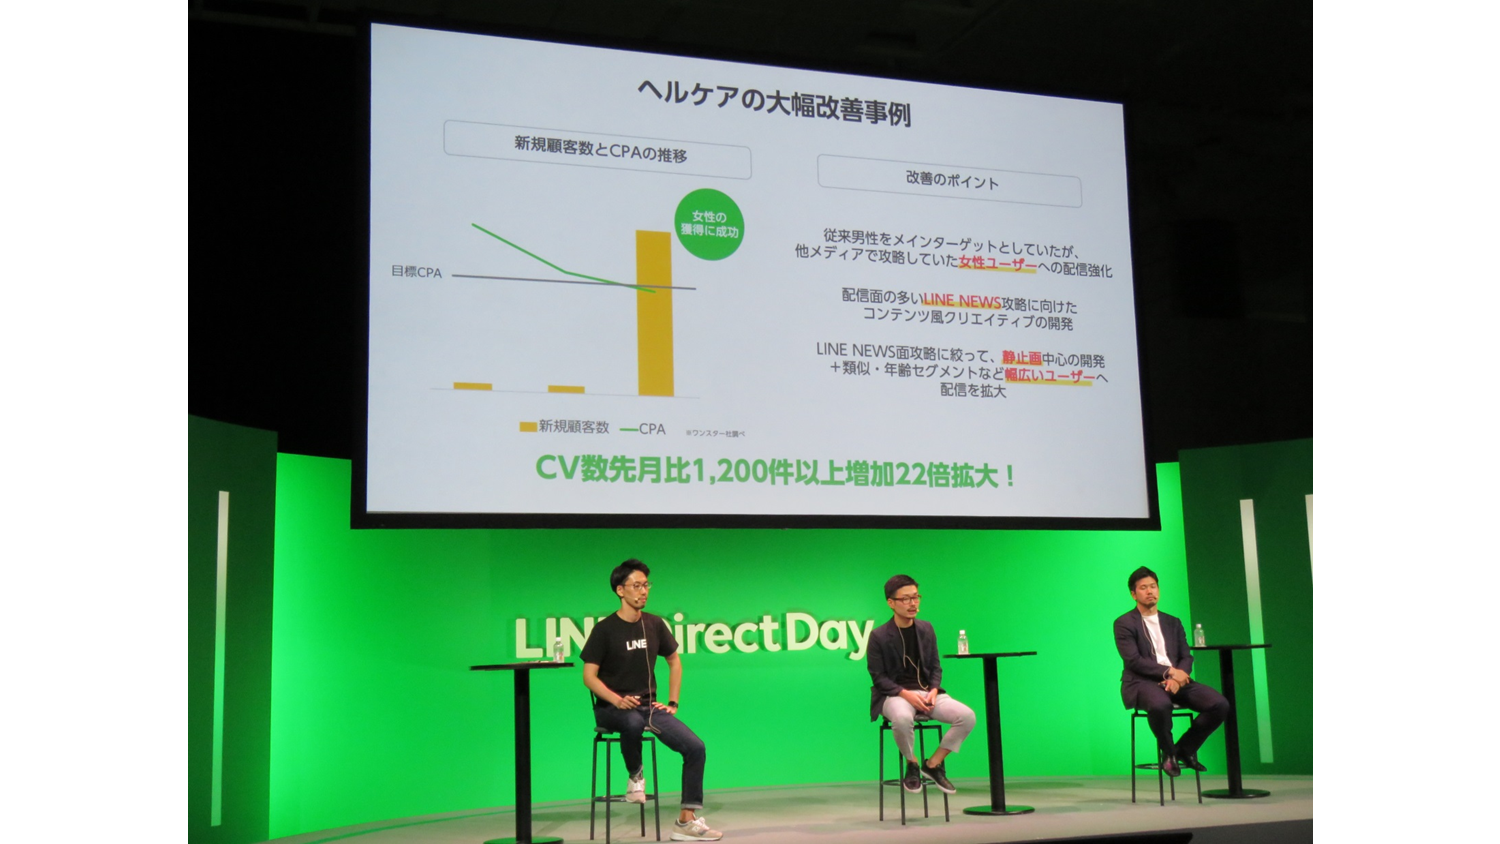 LINE direct Day session1 登壇者